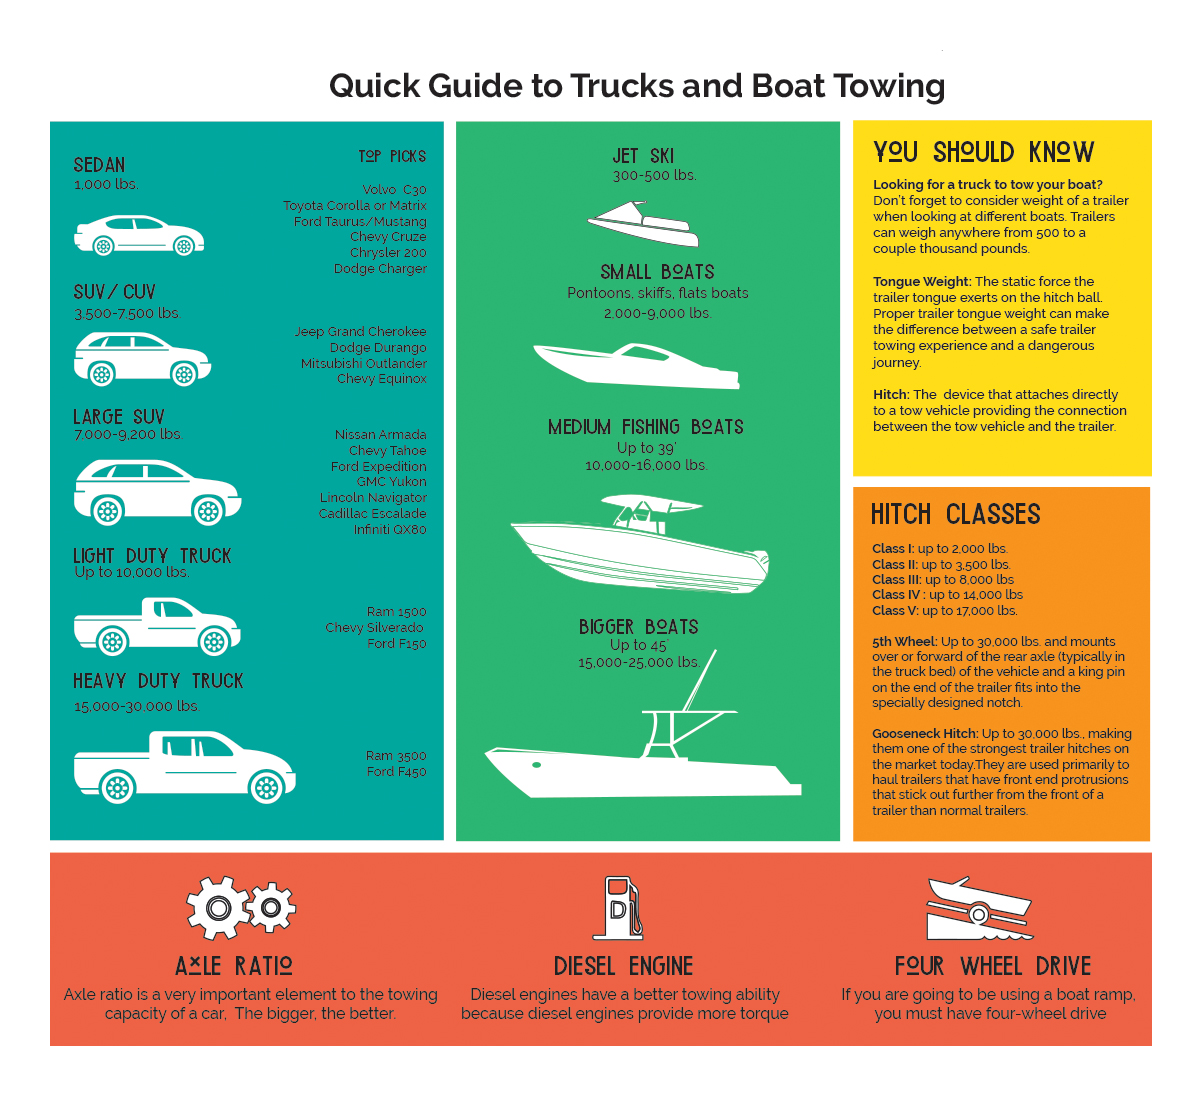 Trucks and Boat Towing Guide